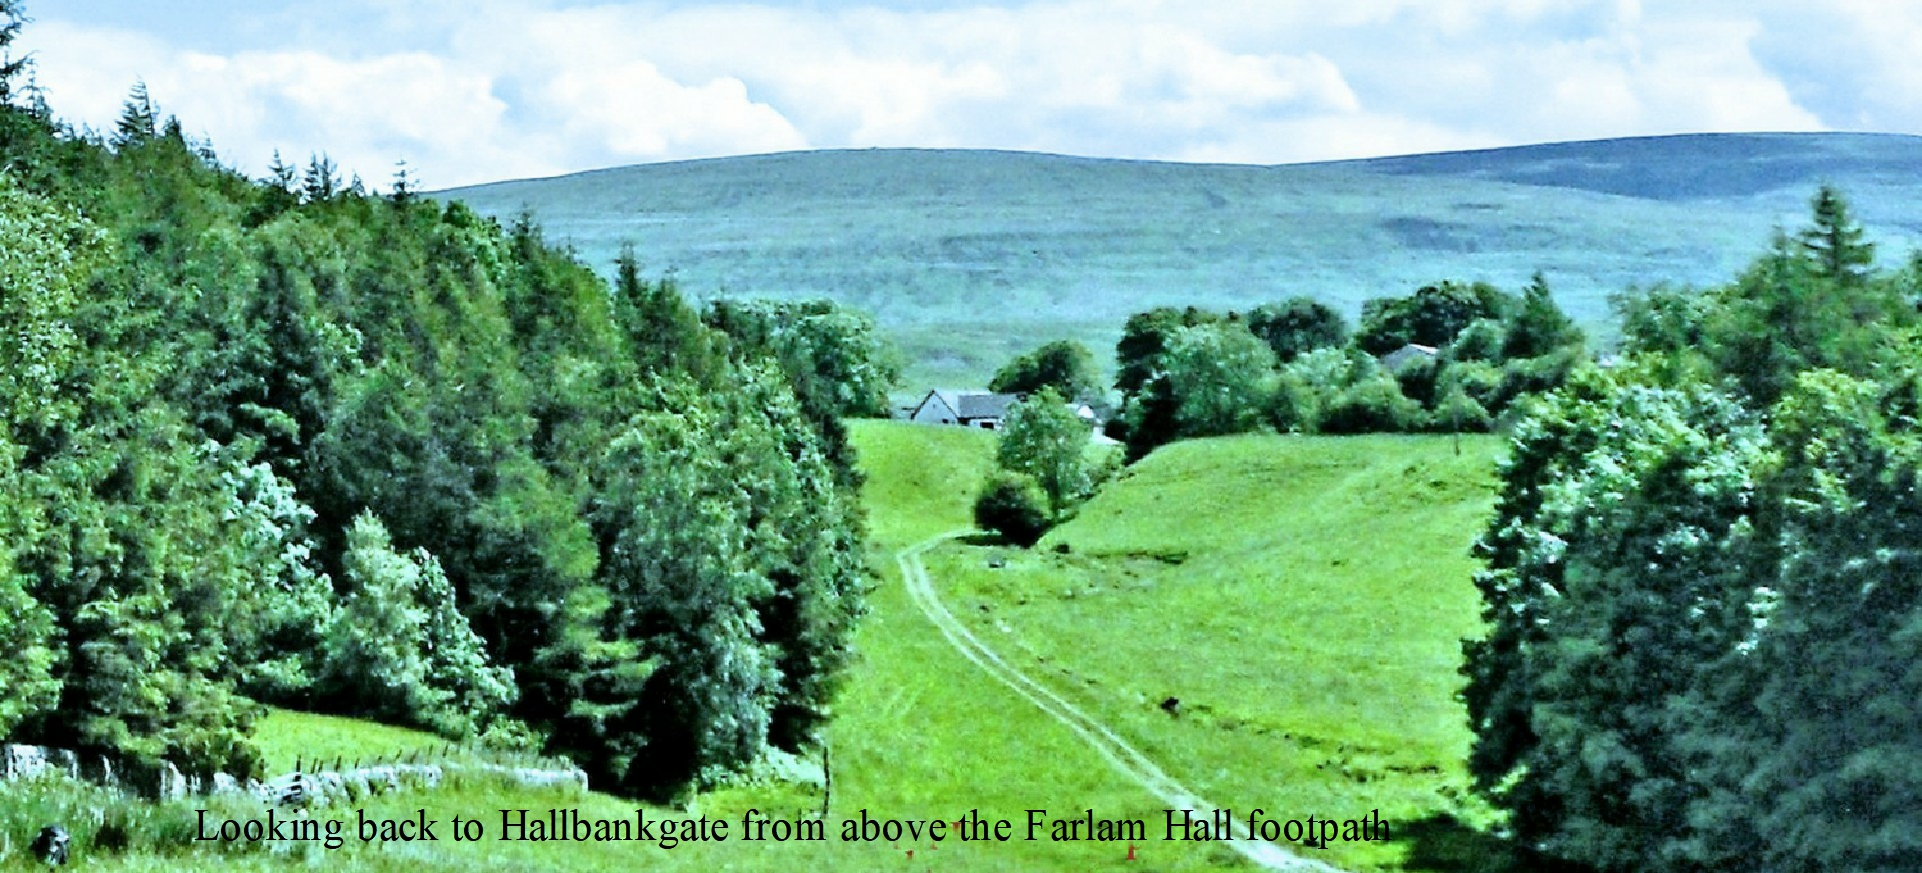 Looking back to Hallbankgate from Farlam Hall Footpath a_Fotor.jpg